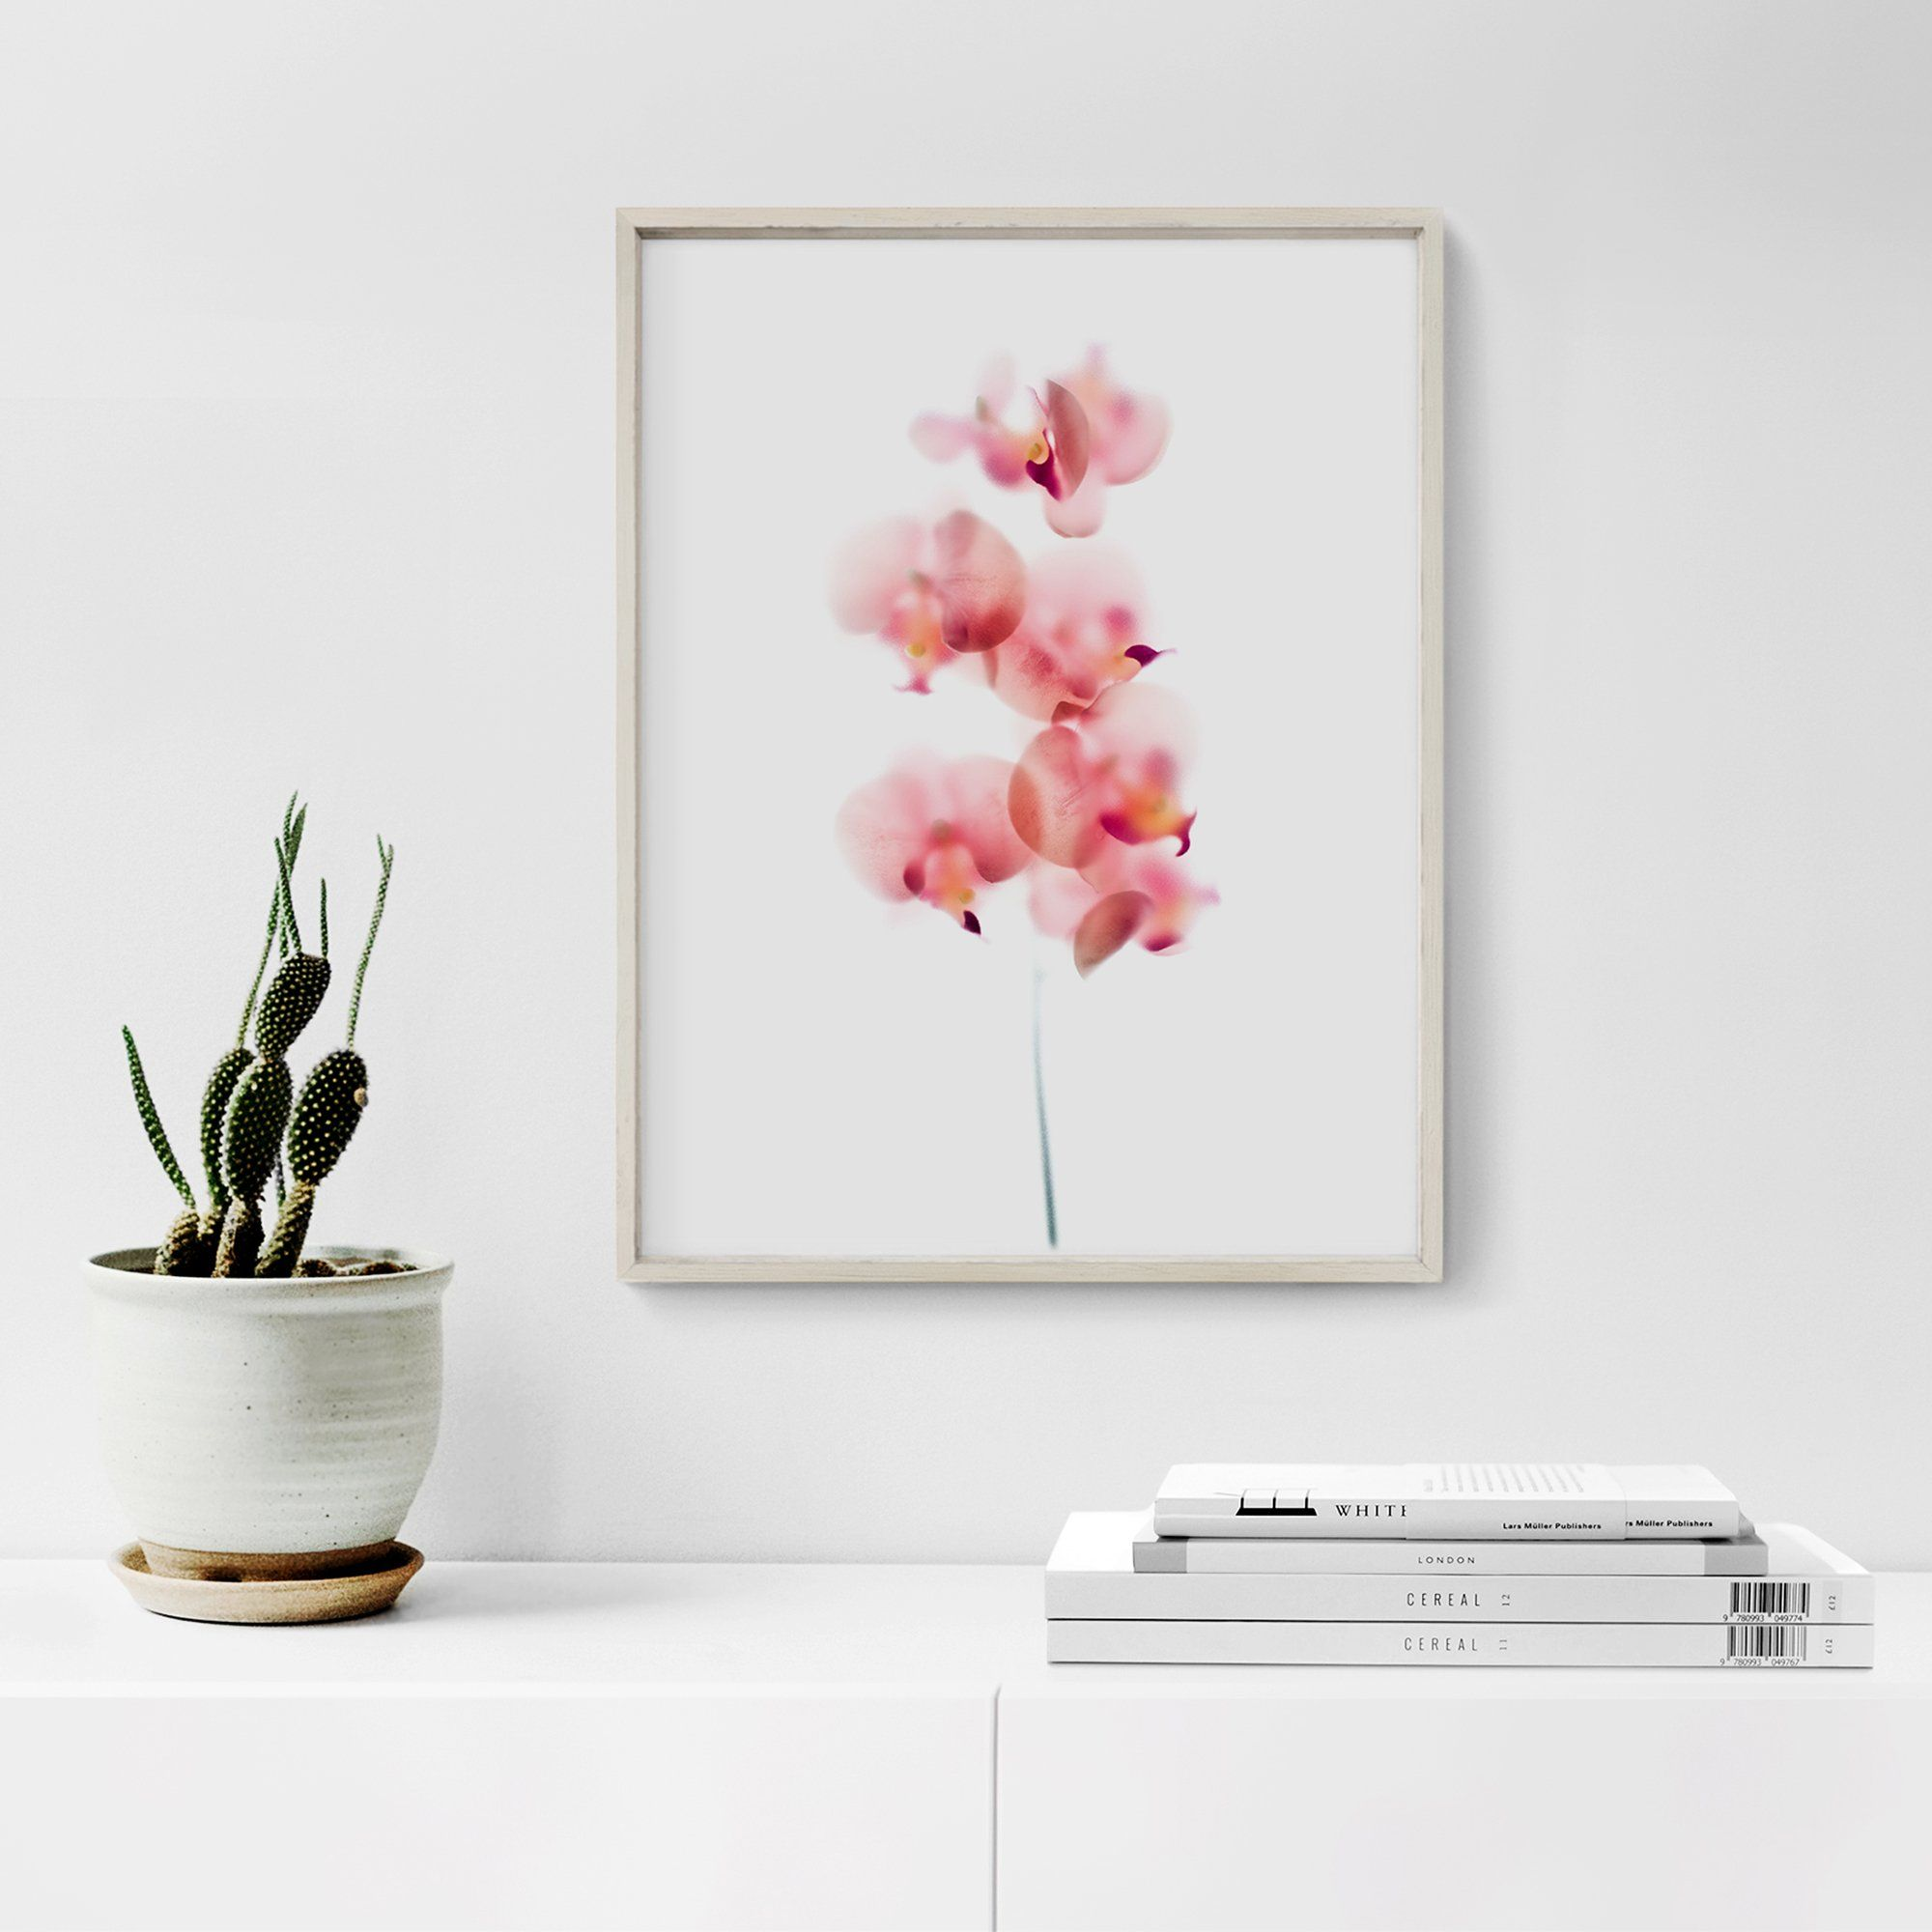 Baby Pink Orchids Floral Art Print - 8 x 10 inches